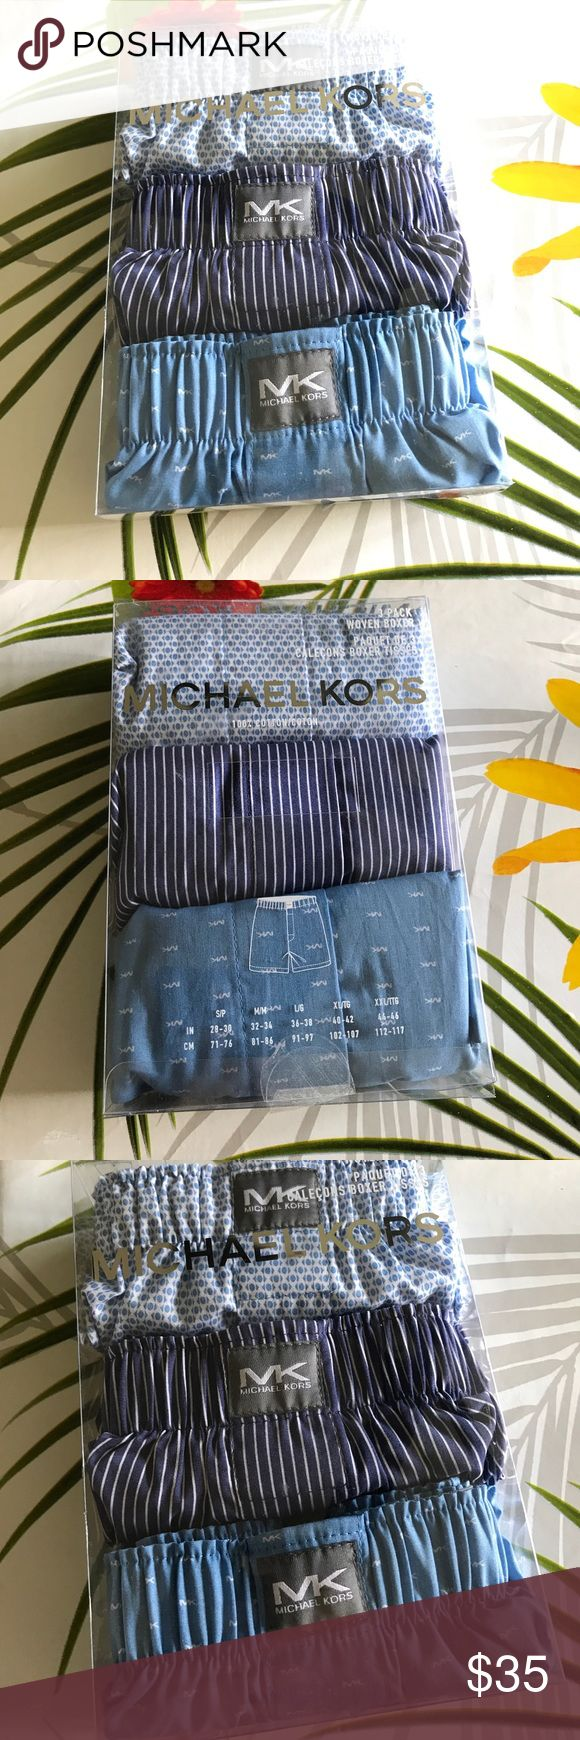 Michael Kors Men's 3 Cotton Woven Boxers Sz Small New in box 100% Cotton Featured in multi Three pack of soft woven boxers Stretch waistbands with Michael Kors logo patch at front Button fly      Location : Blue Bag Michael Kors Underwear & Socks Boxers